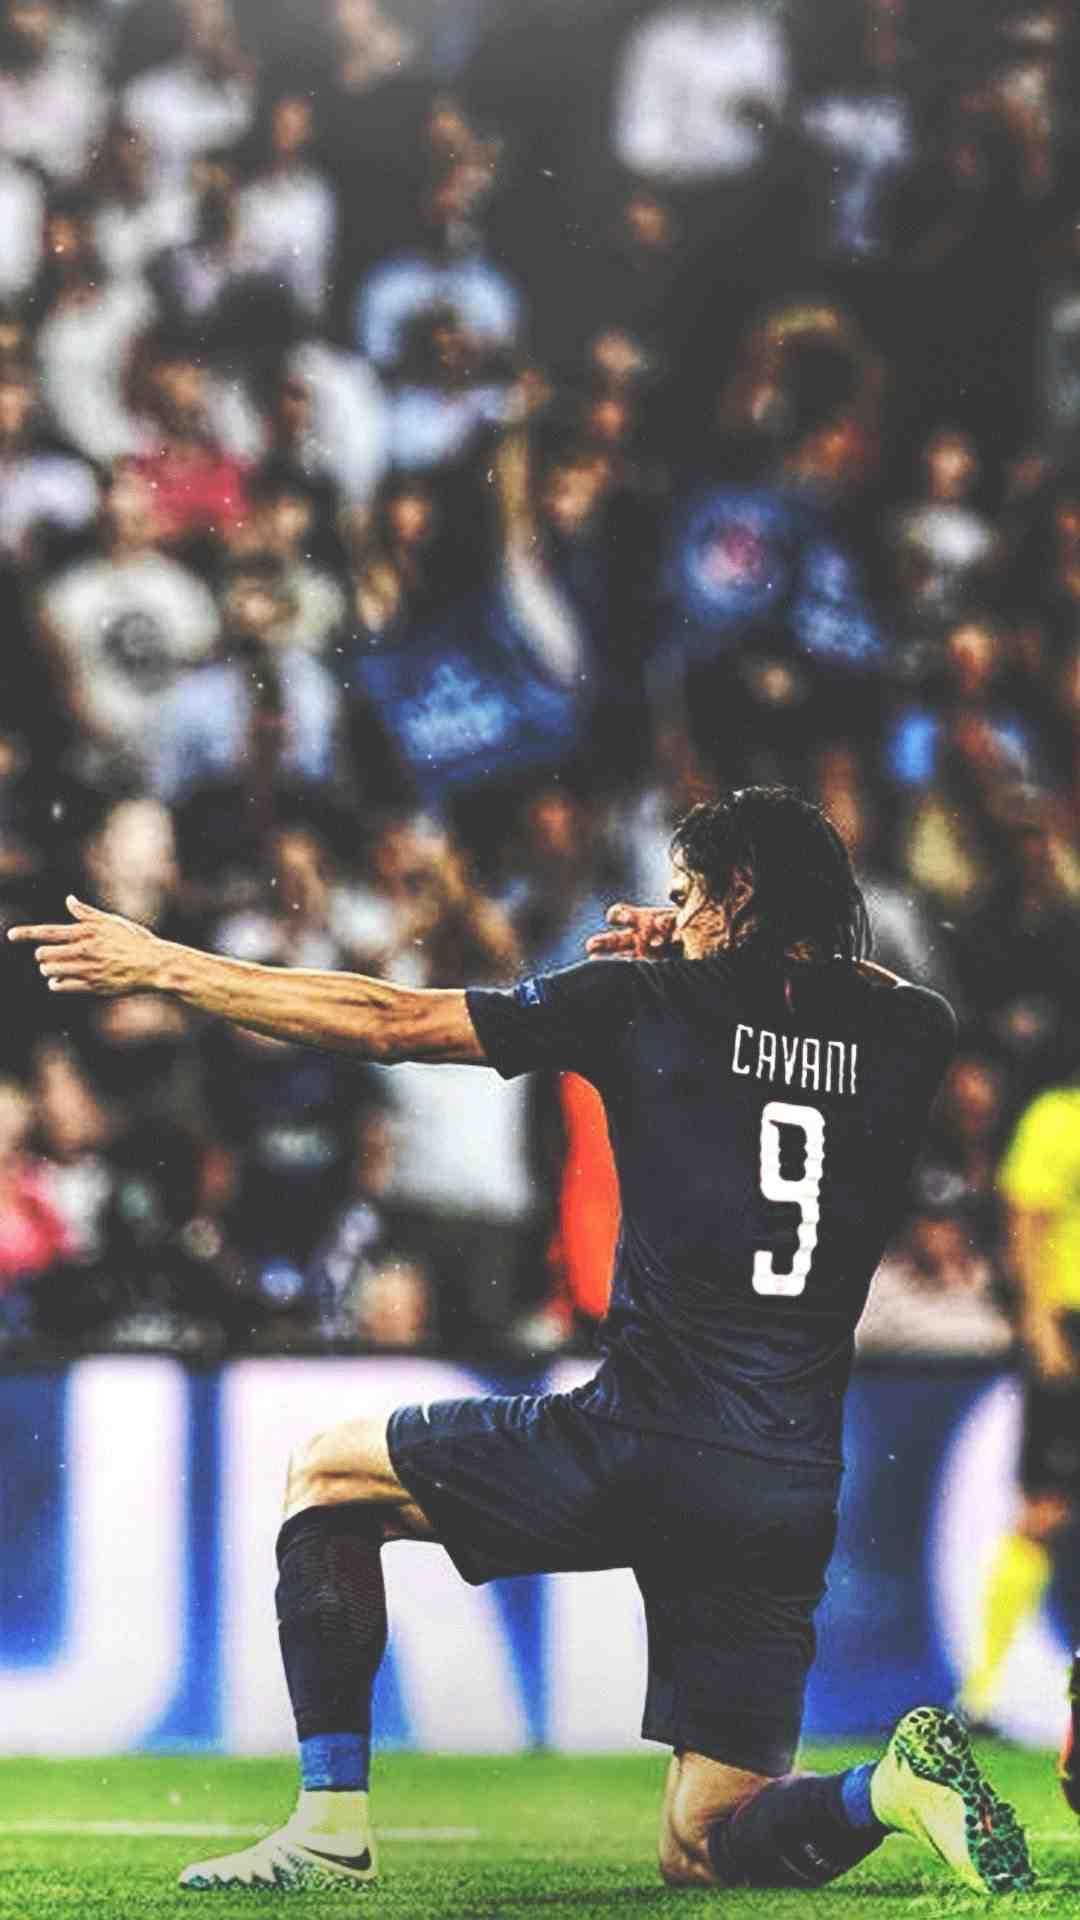 Edinson Cavani Wallpapers Hd For Android Apk Download